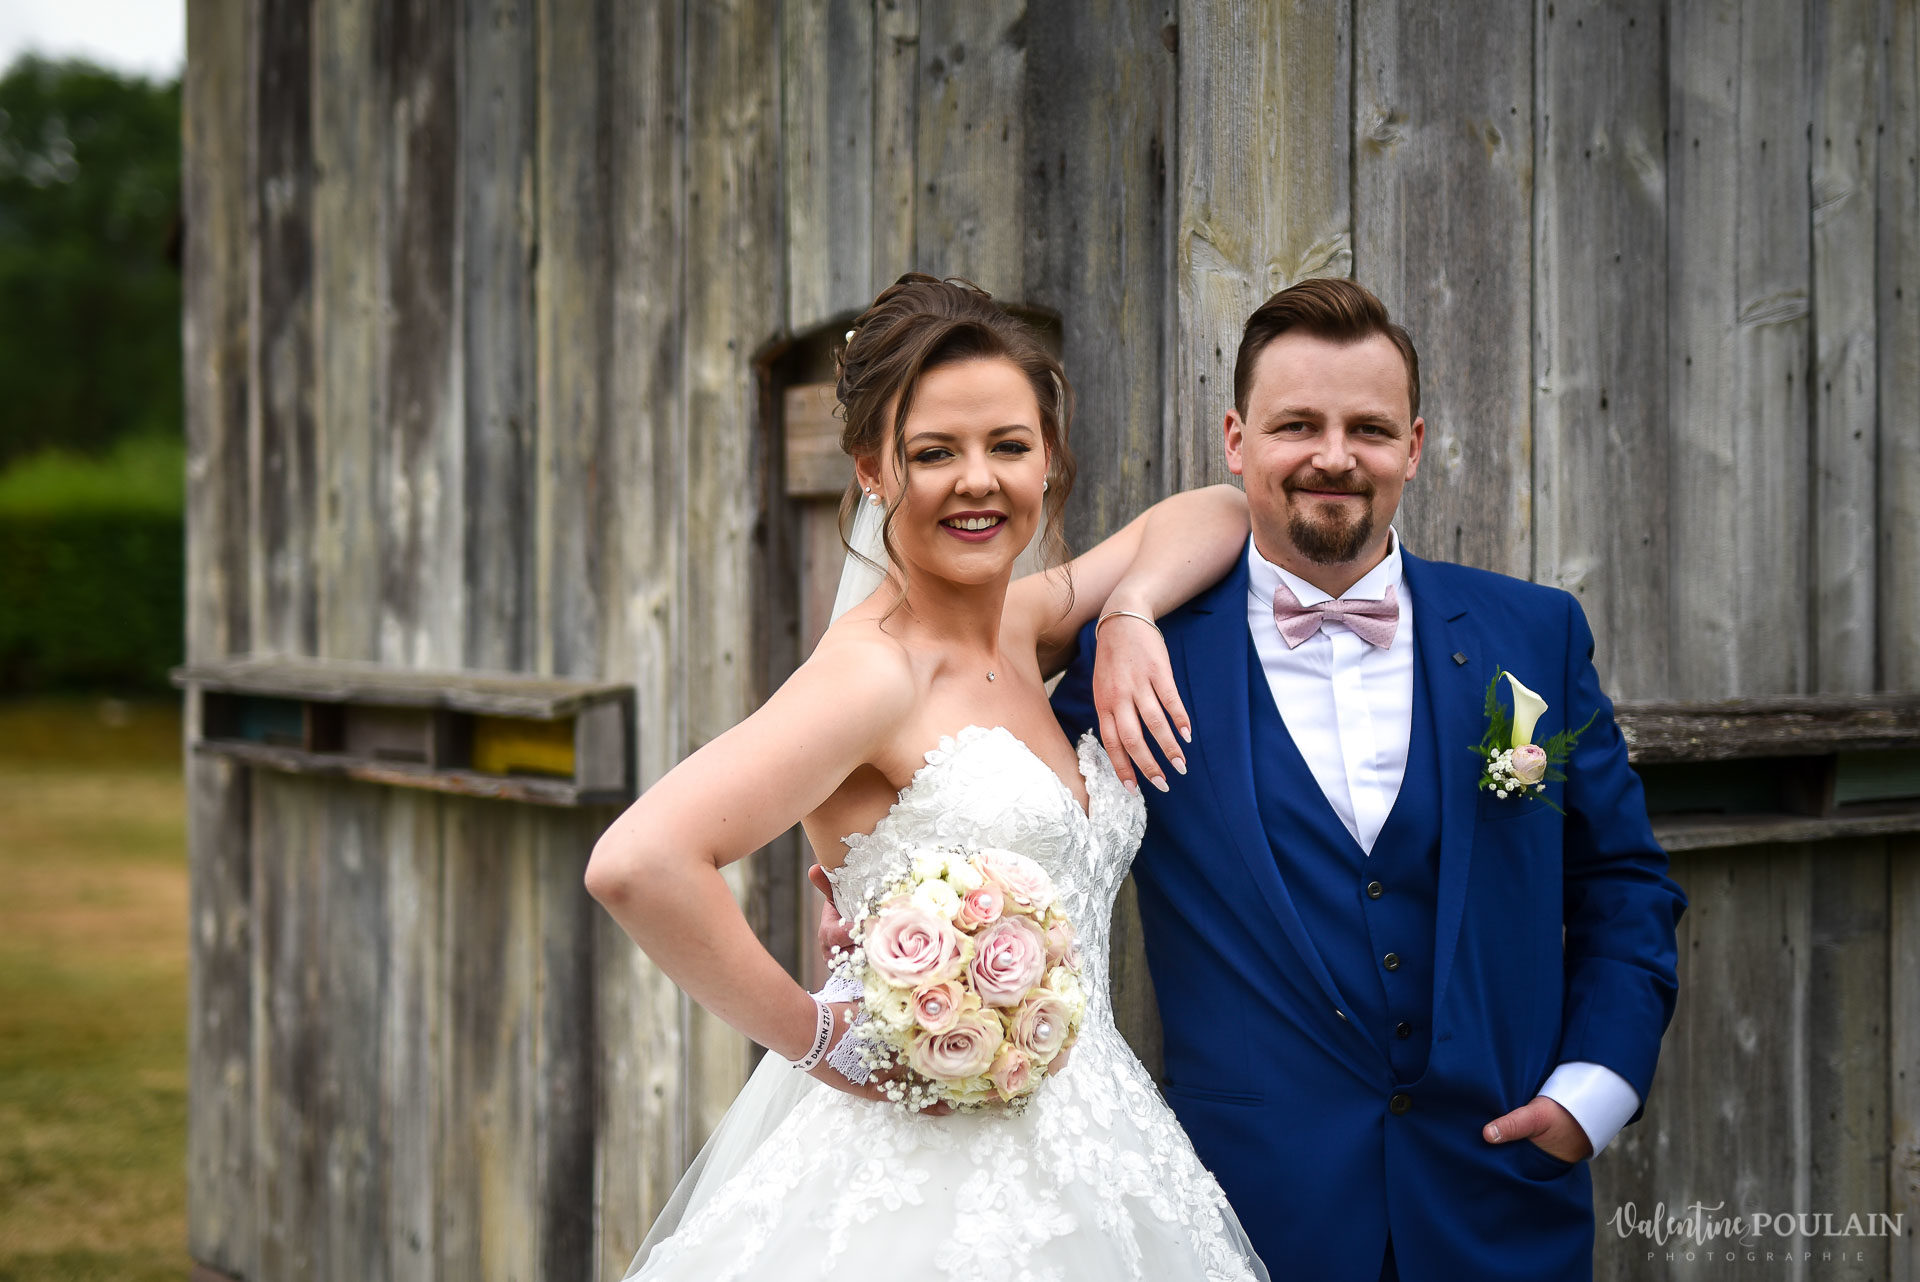 Mariage cool ferme weyerbach - Valentine Poulain complices